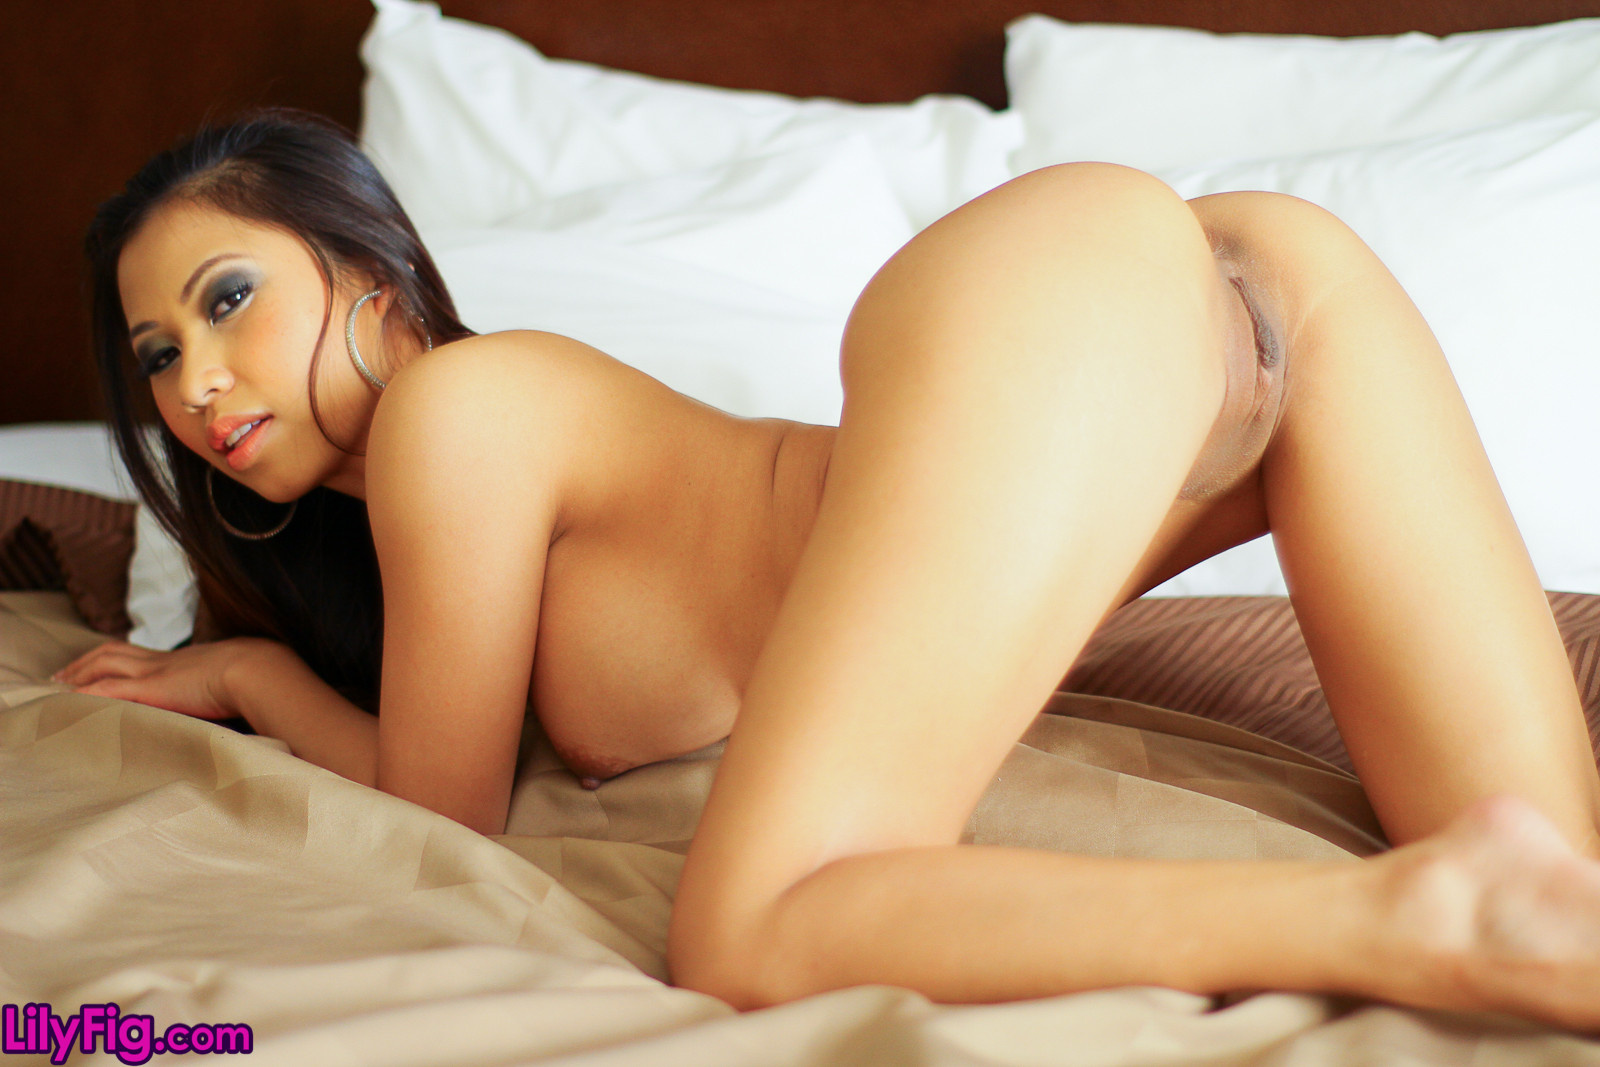 Wallpaper Tits, Ass, Pussy, Asian Desktop Wallpaper -6983